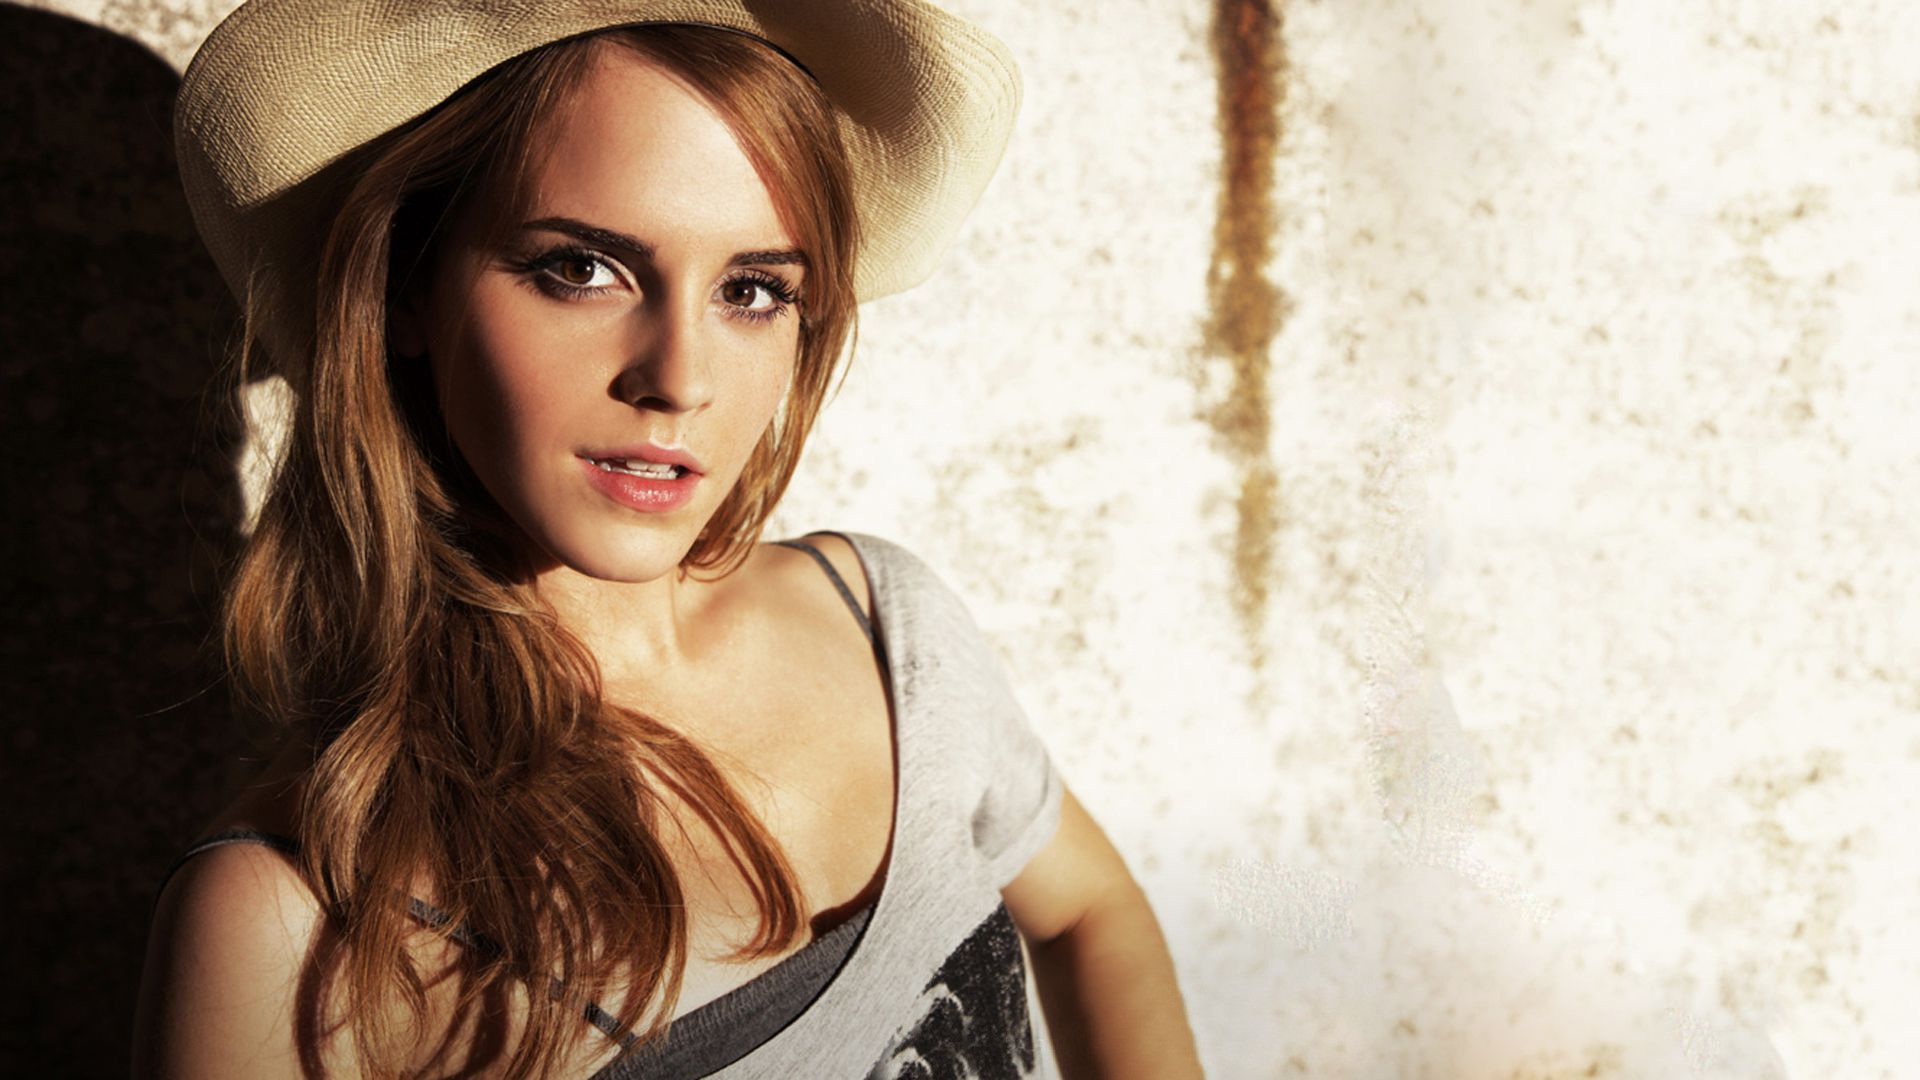 a4 emma watson Wallpaper HD wallpapers backgrounds images FHD 1920x1080